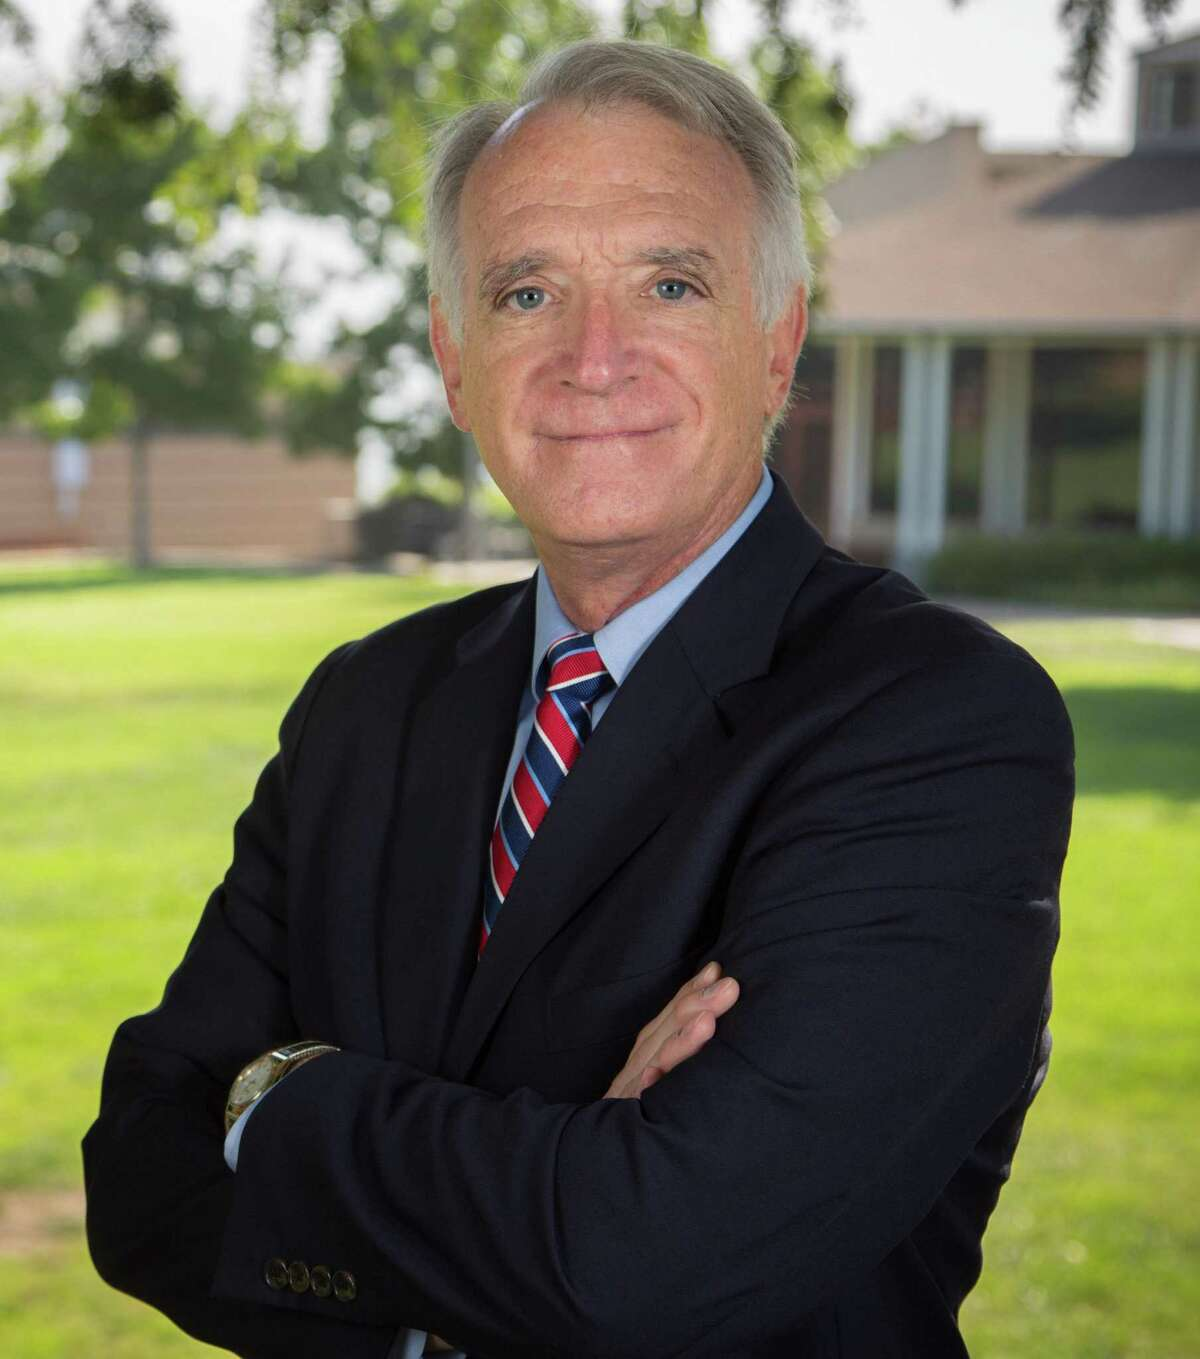 """Whitby School's Board of Trustees announced the appointment of John """"Jack"""" Creeden as the school's Interim Head of School on Monday. He replaces Jason Anklowitz, who became the head of school last July, and announced his departure in May."""